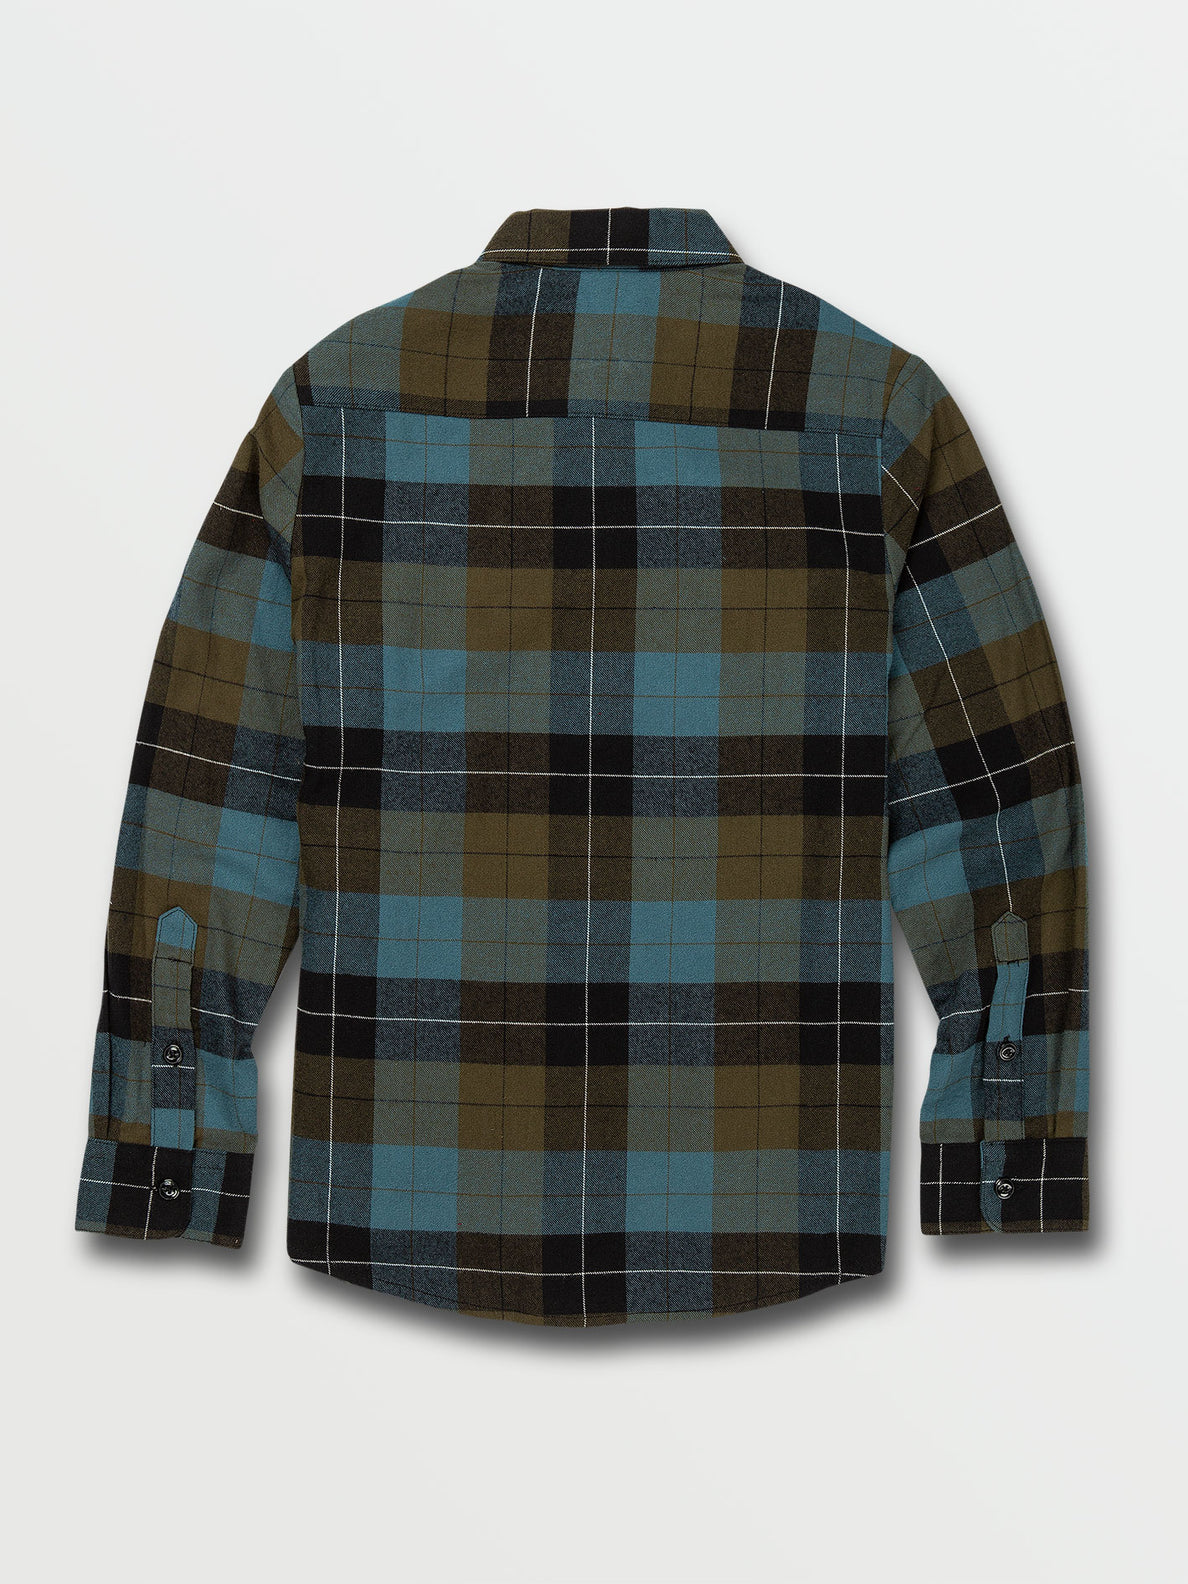 Big Boys Caden Plaid Long Sleeve Flannel - Military (C0532005_MIL) [B]